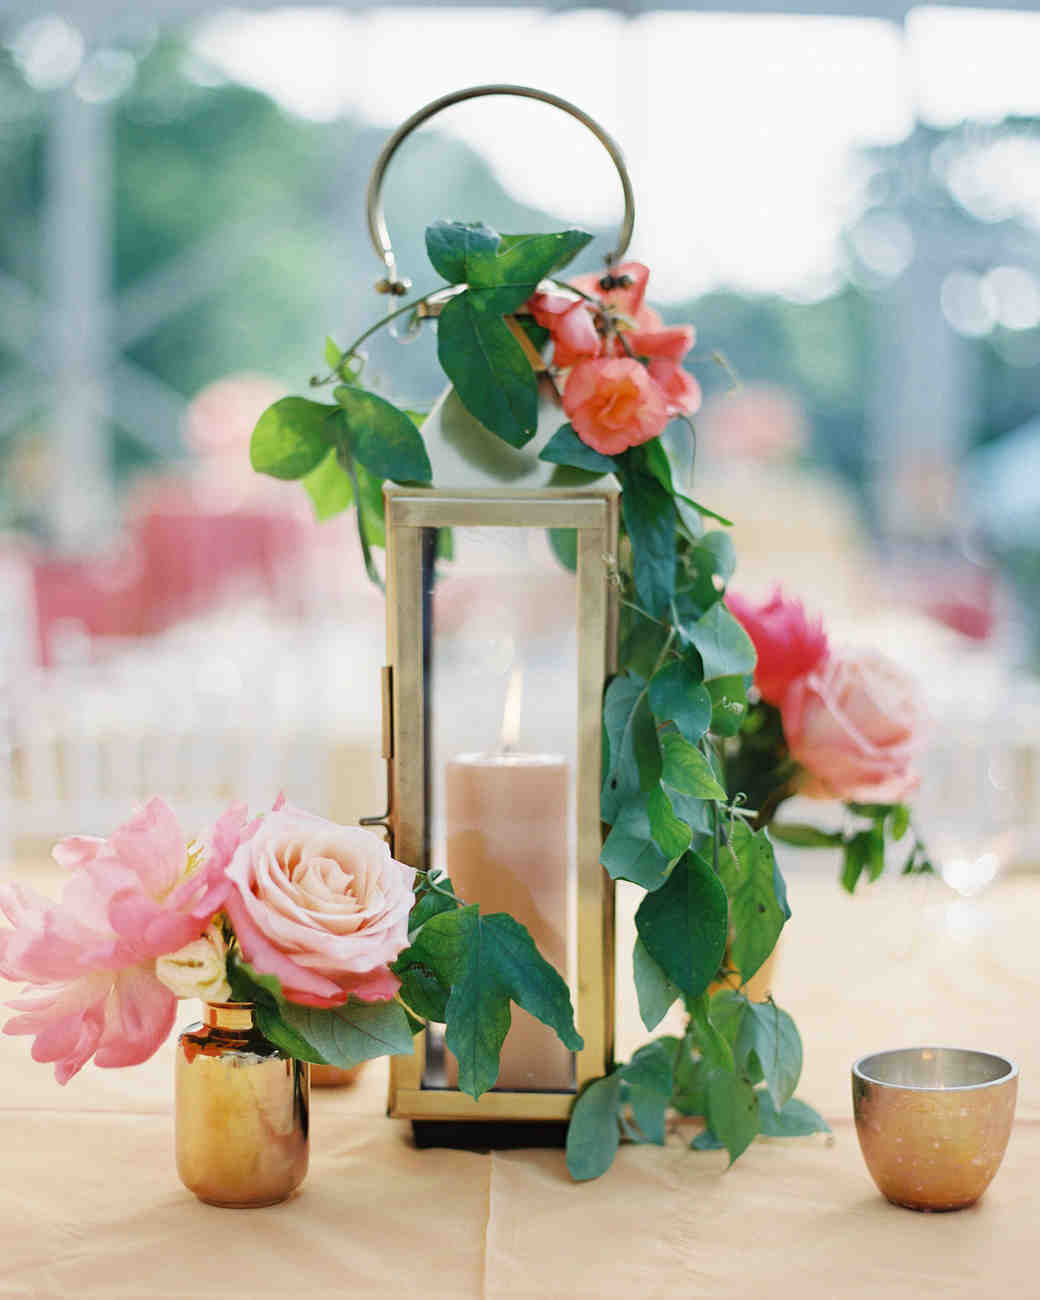 Centerpiece Flowers For Wedding Reception: 39 Simple Wedding Centerpieces